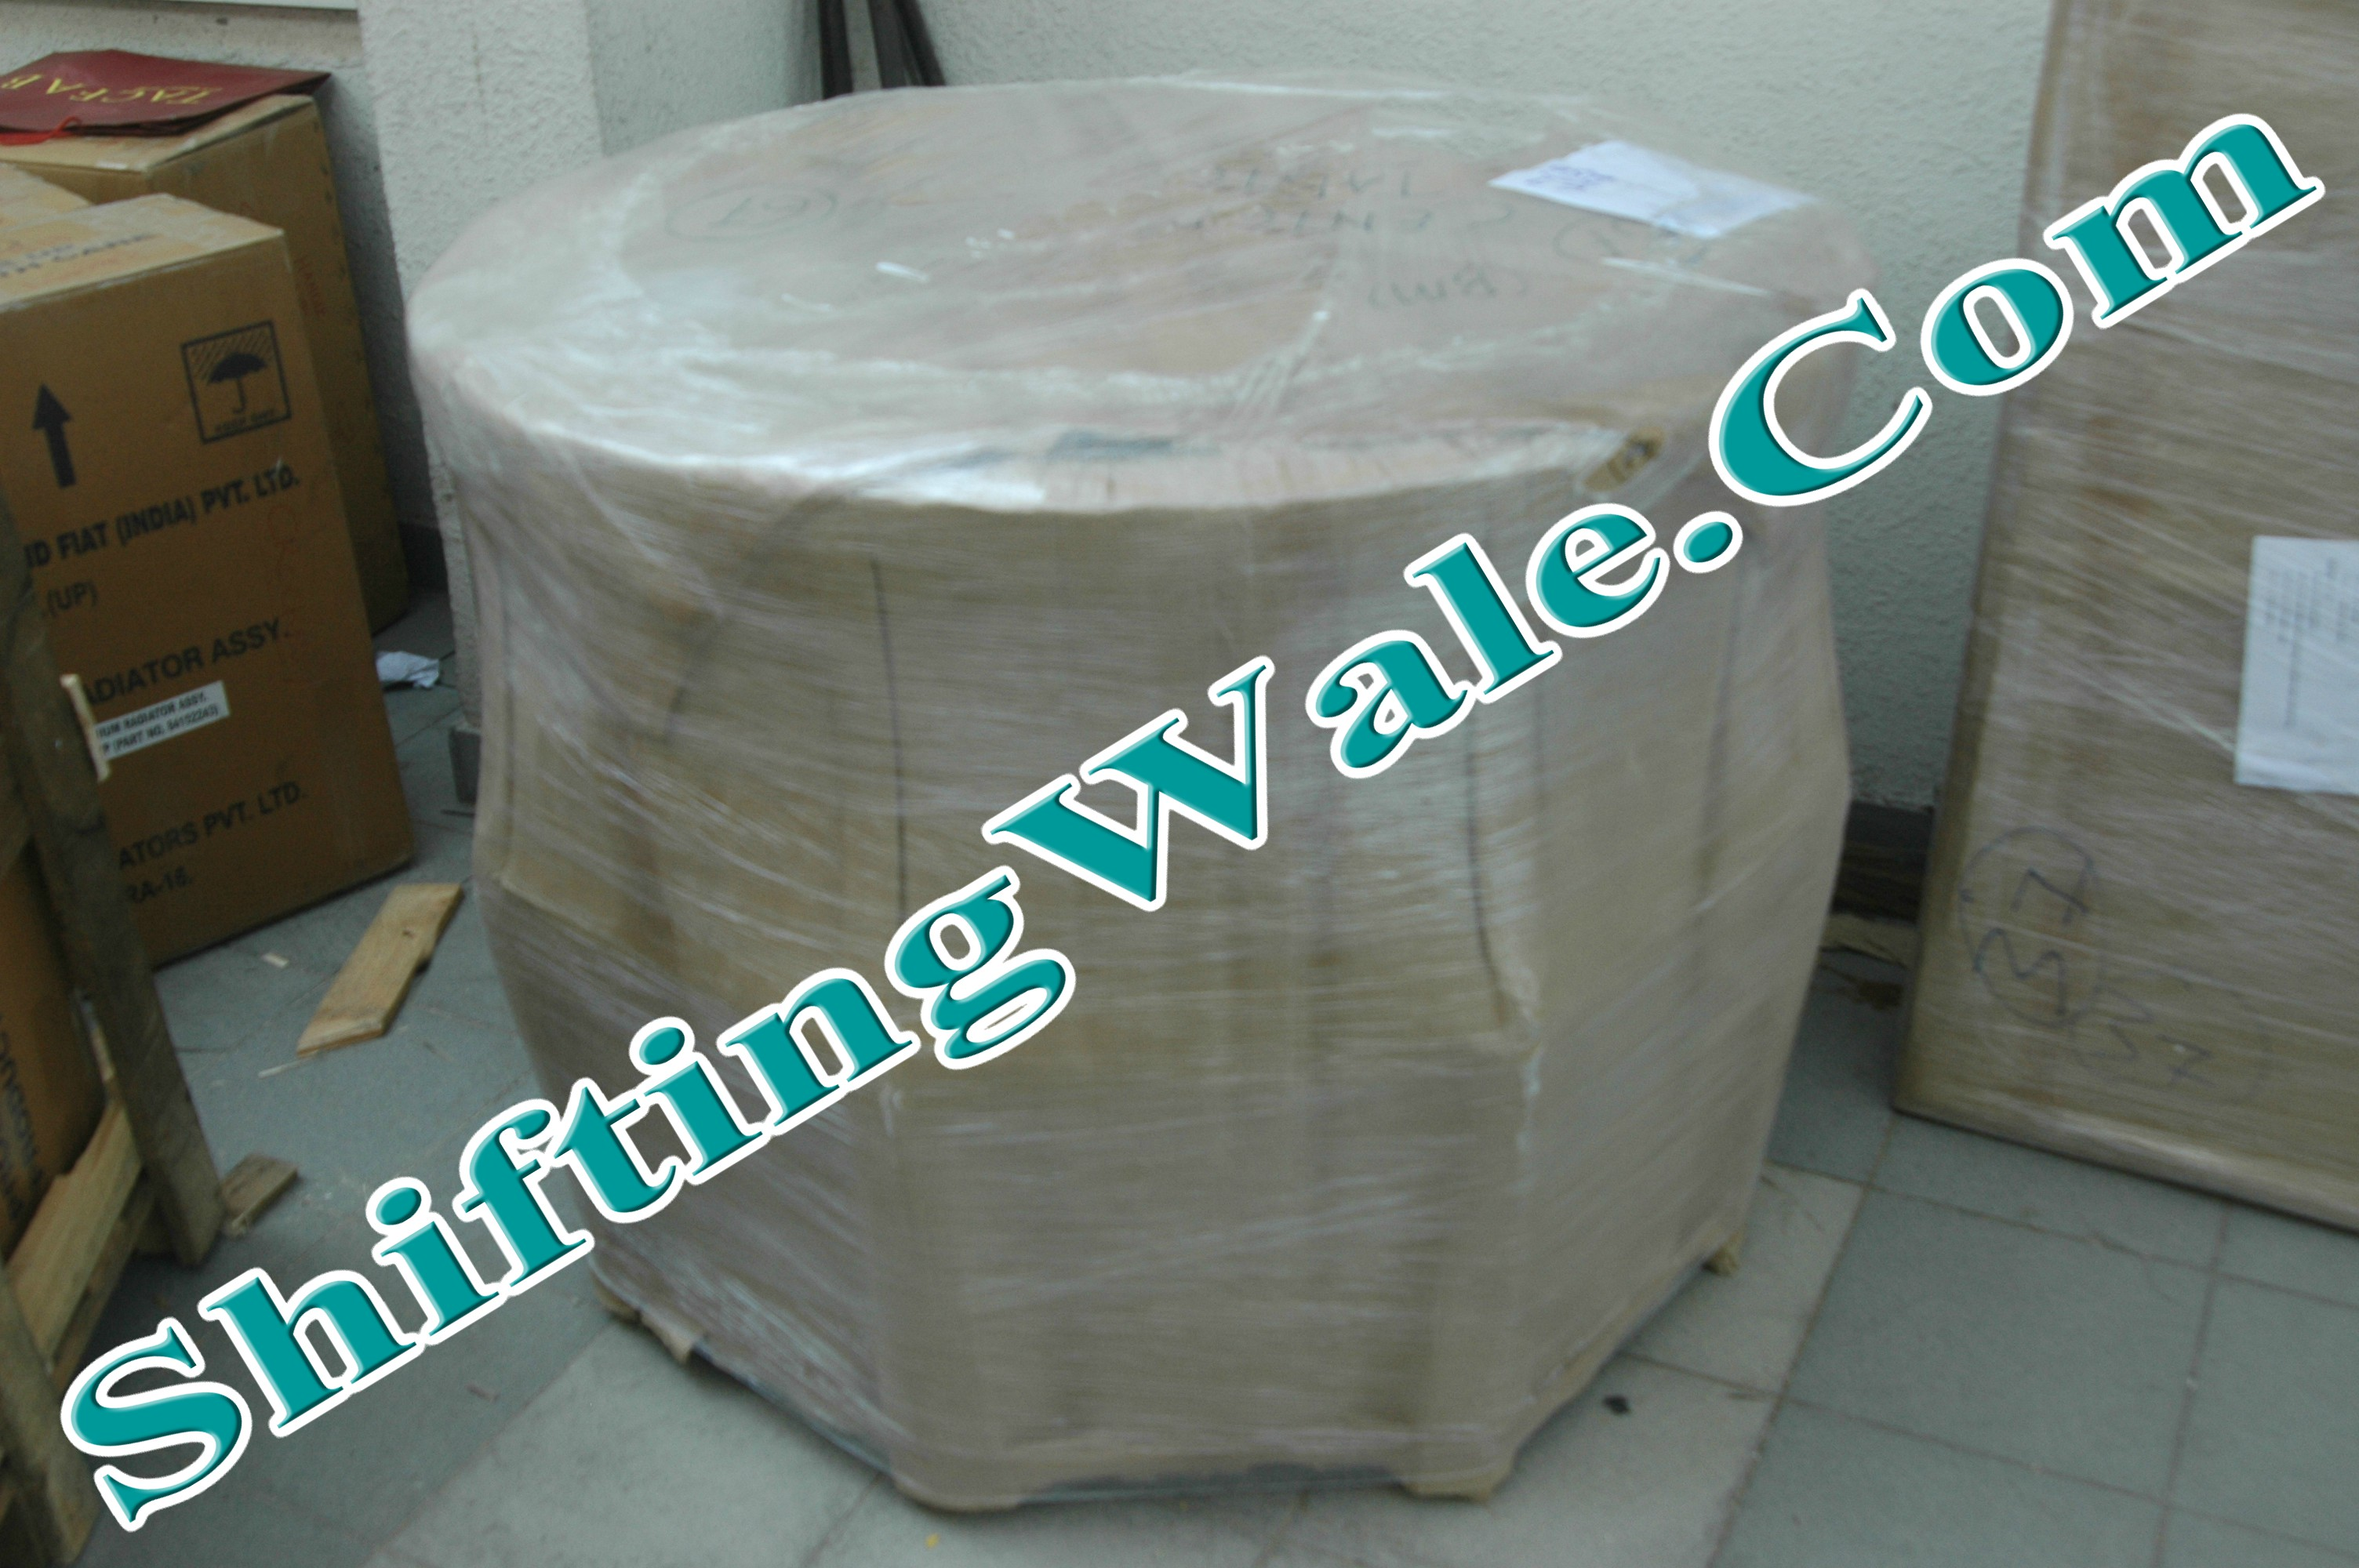 Bhubaneswar to Chennai Packers and Movers Get Free Quotation with Best Price